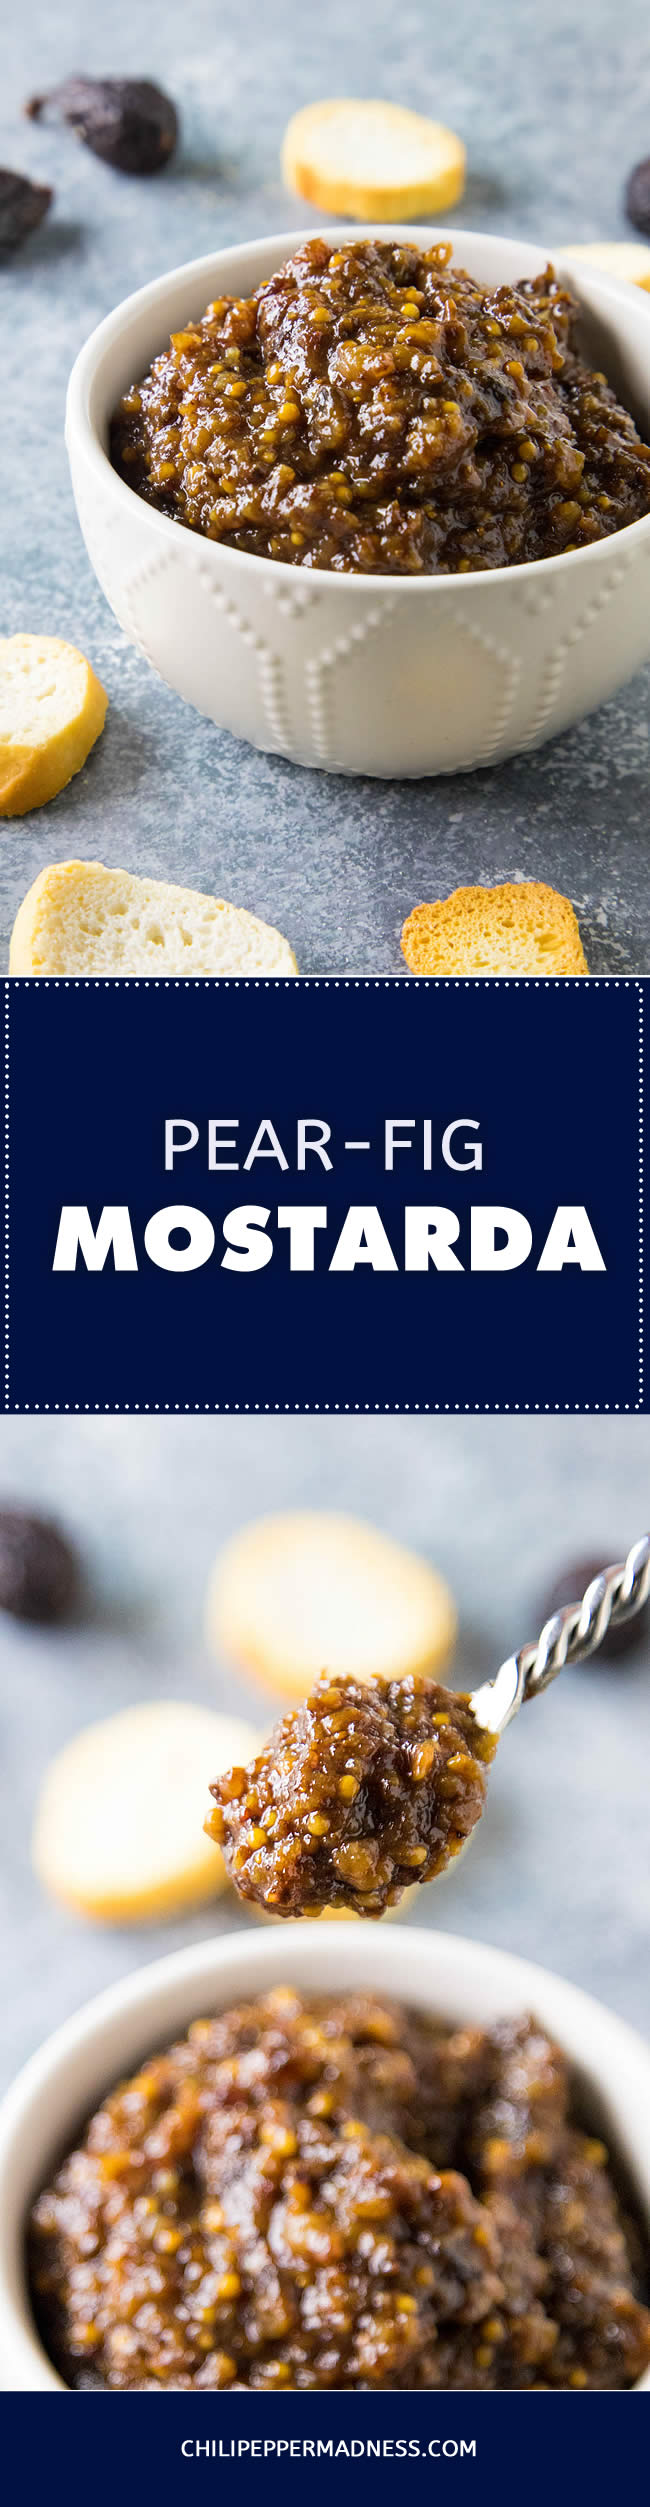 Pear-Fig Mostarda - Recipe